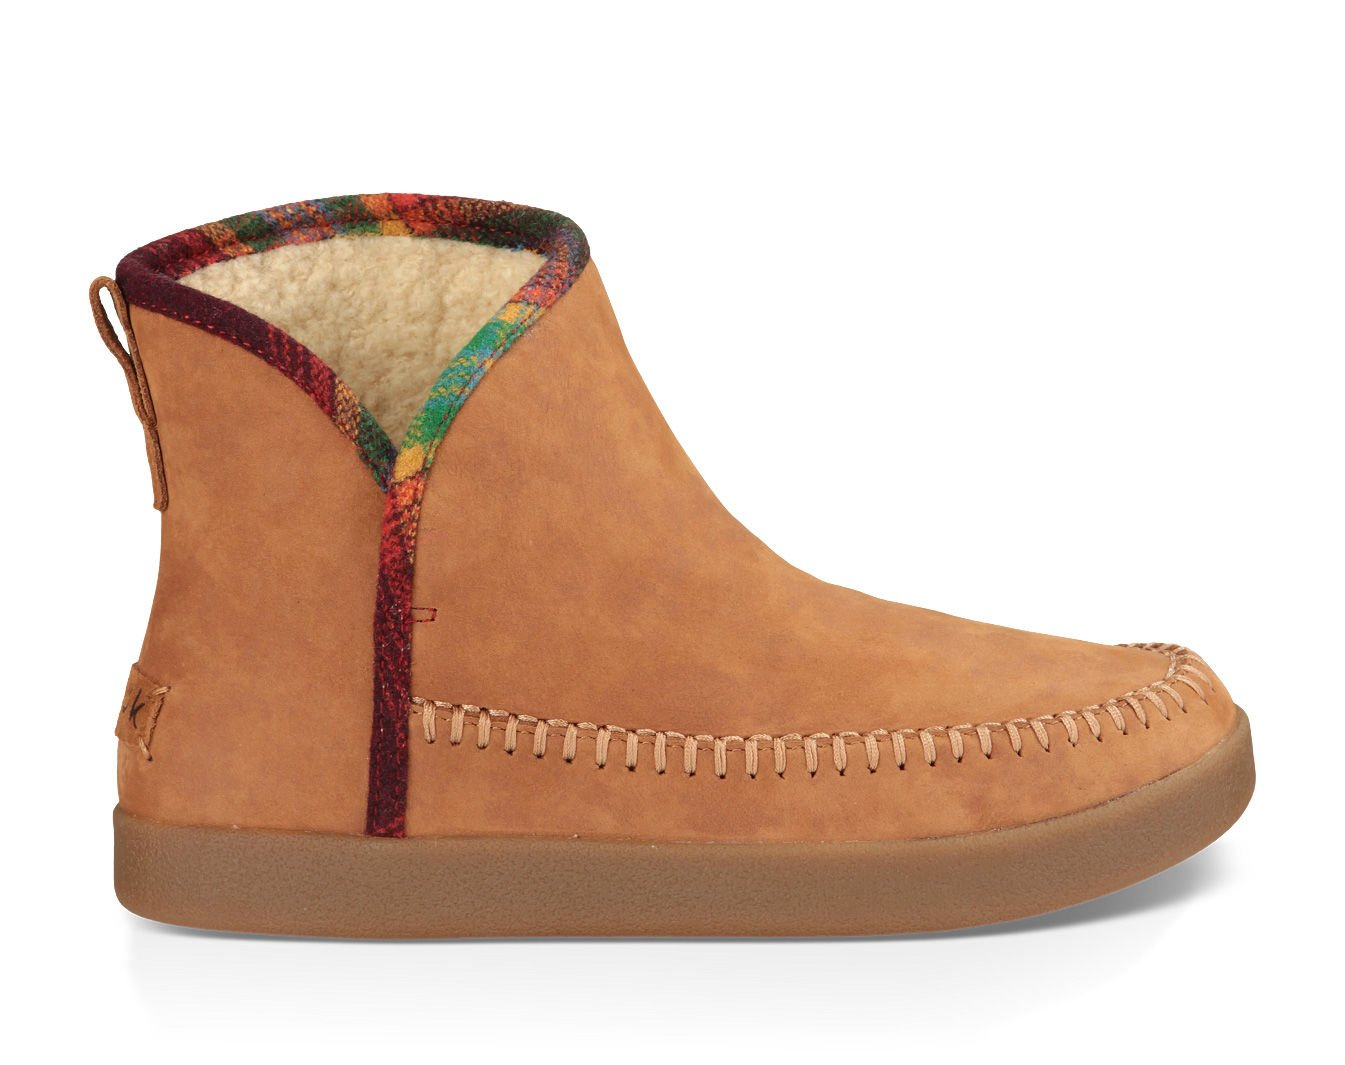 Sanuk Women's Nice Bootah Lx Boot Tobacco / Vintage Rainbow 8 & Cleaner by Sanuk, US